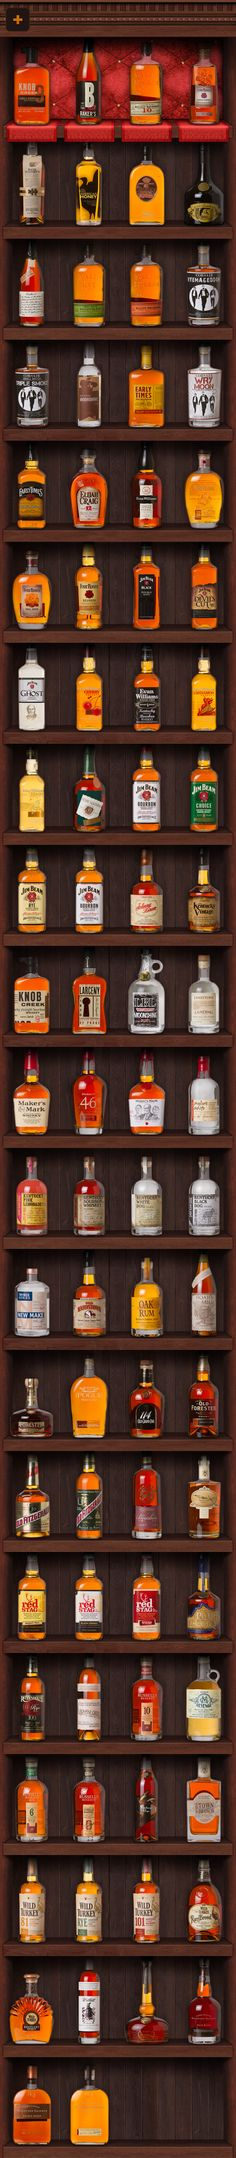 All the Kentucky bourbon you need to know I have personally tried 23 of these at this time. How about you? What's your favorite top shelf and everyday bourban?